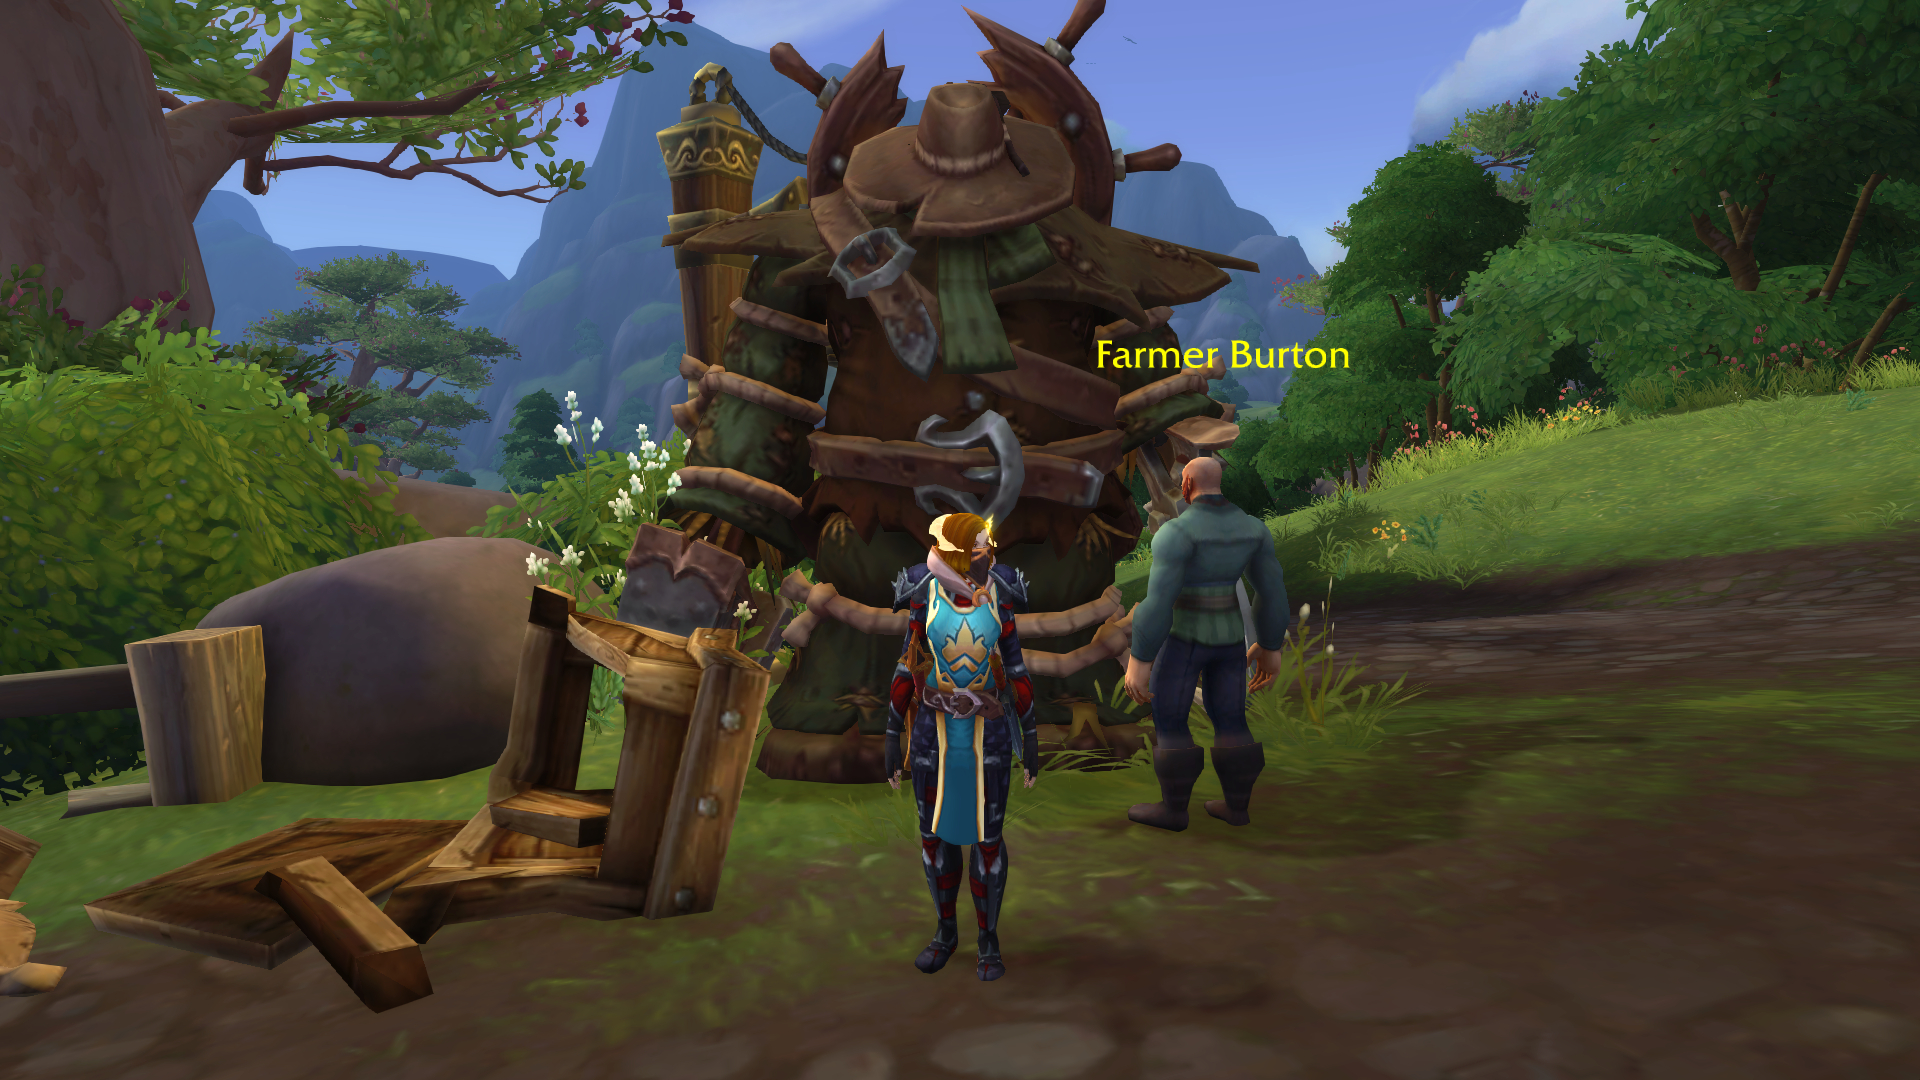 Rogue in armor standing by an NPC